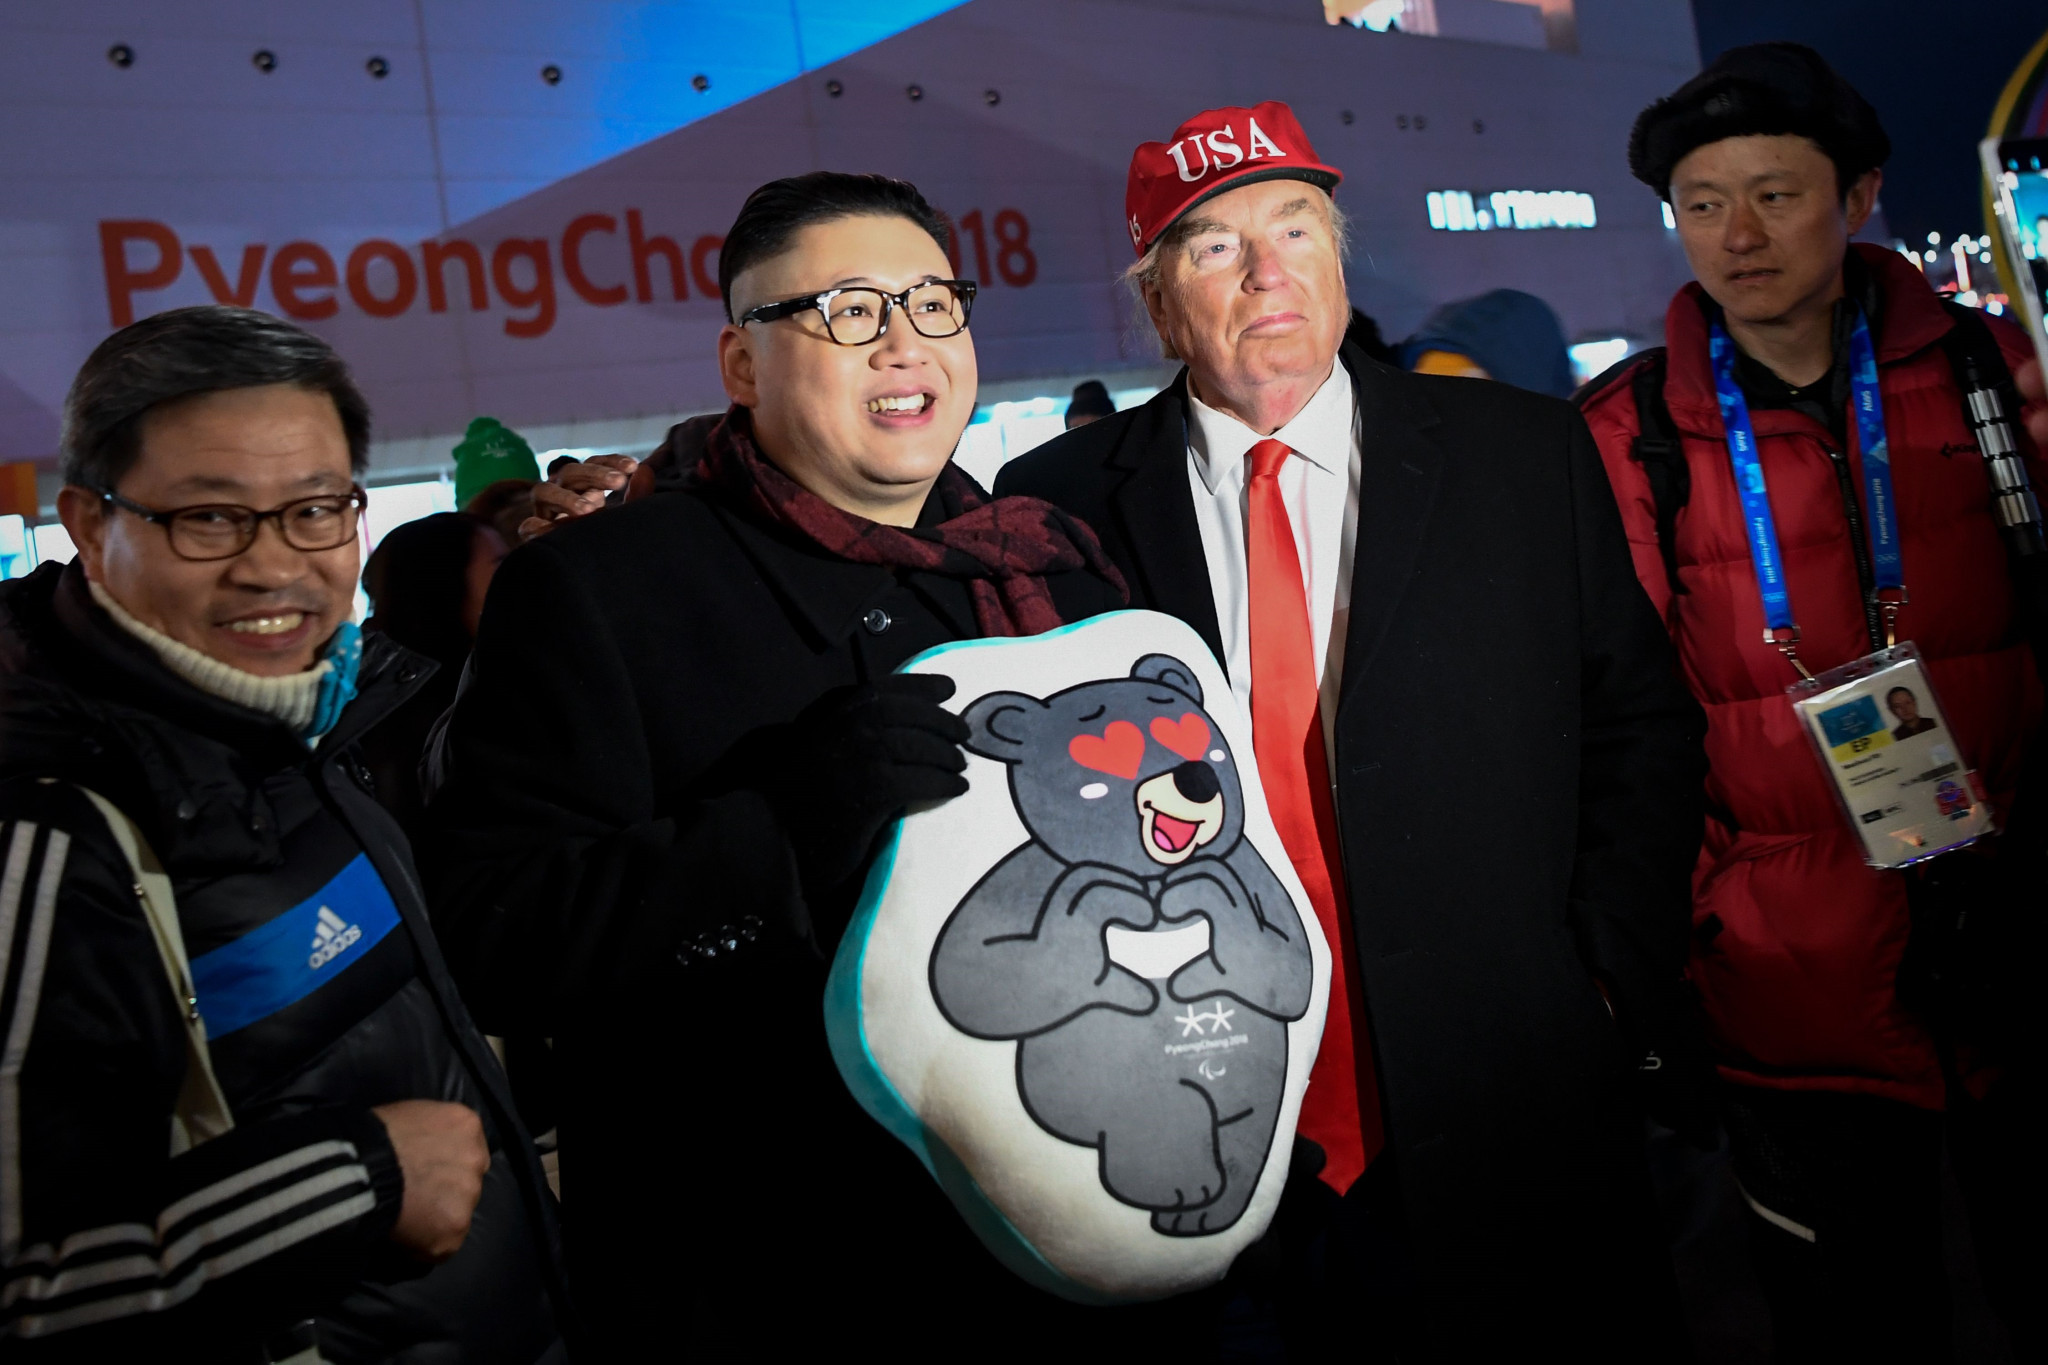 Donald Trump and Kim Jong-un impersonators gatecrashed the Opening Ceremony of the 2018 Winter Olympic Games in Pyeongchang - but the real Kim and Trump could meet soon ©Getty Images